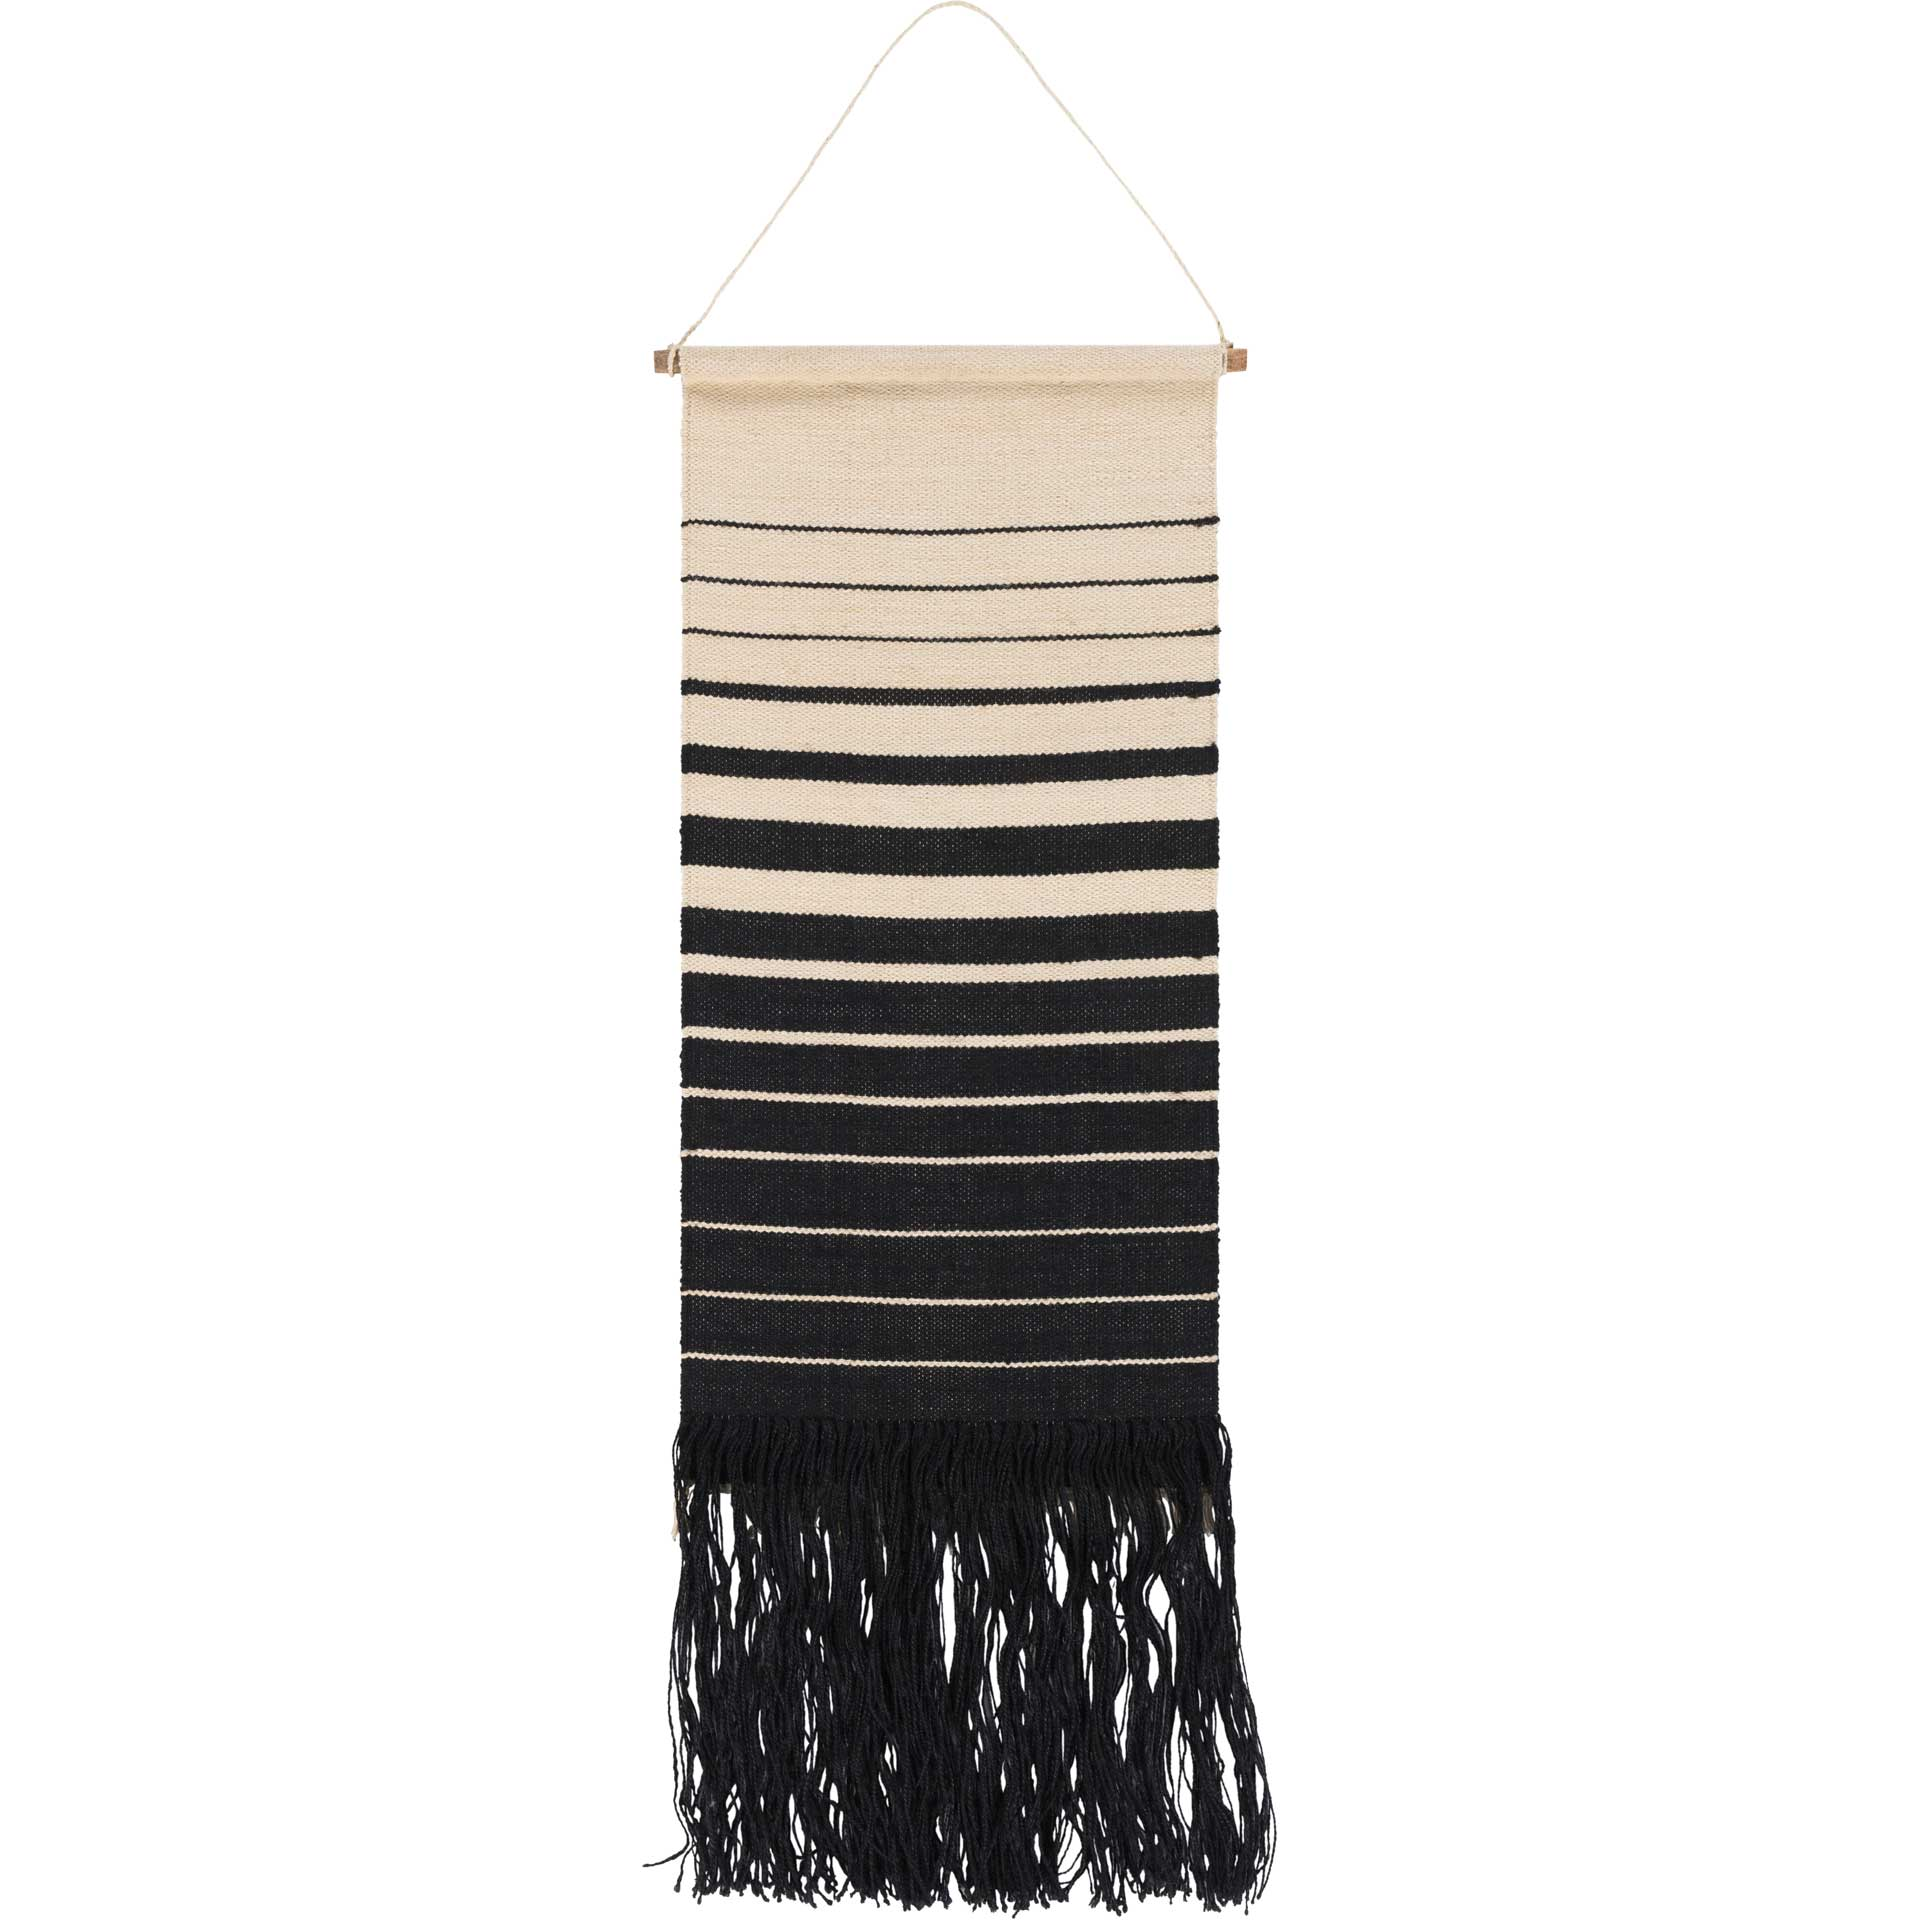 Kailani Wall Hanging Black/Cream